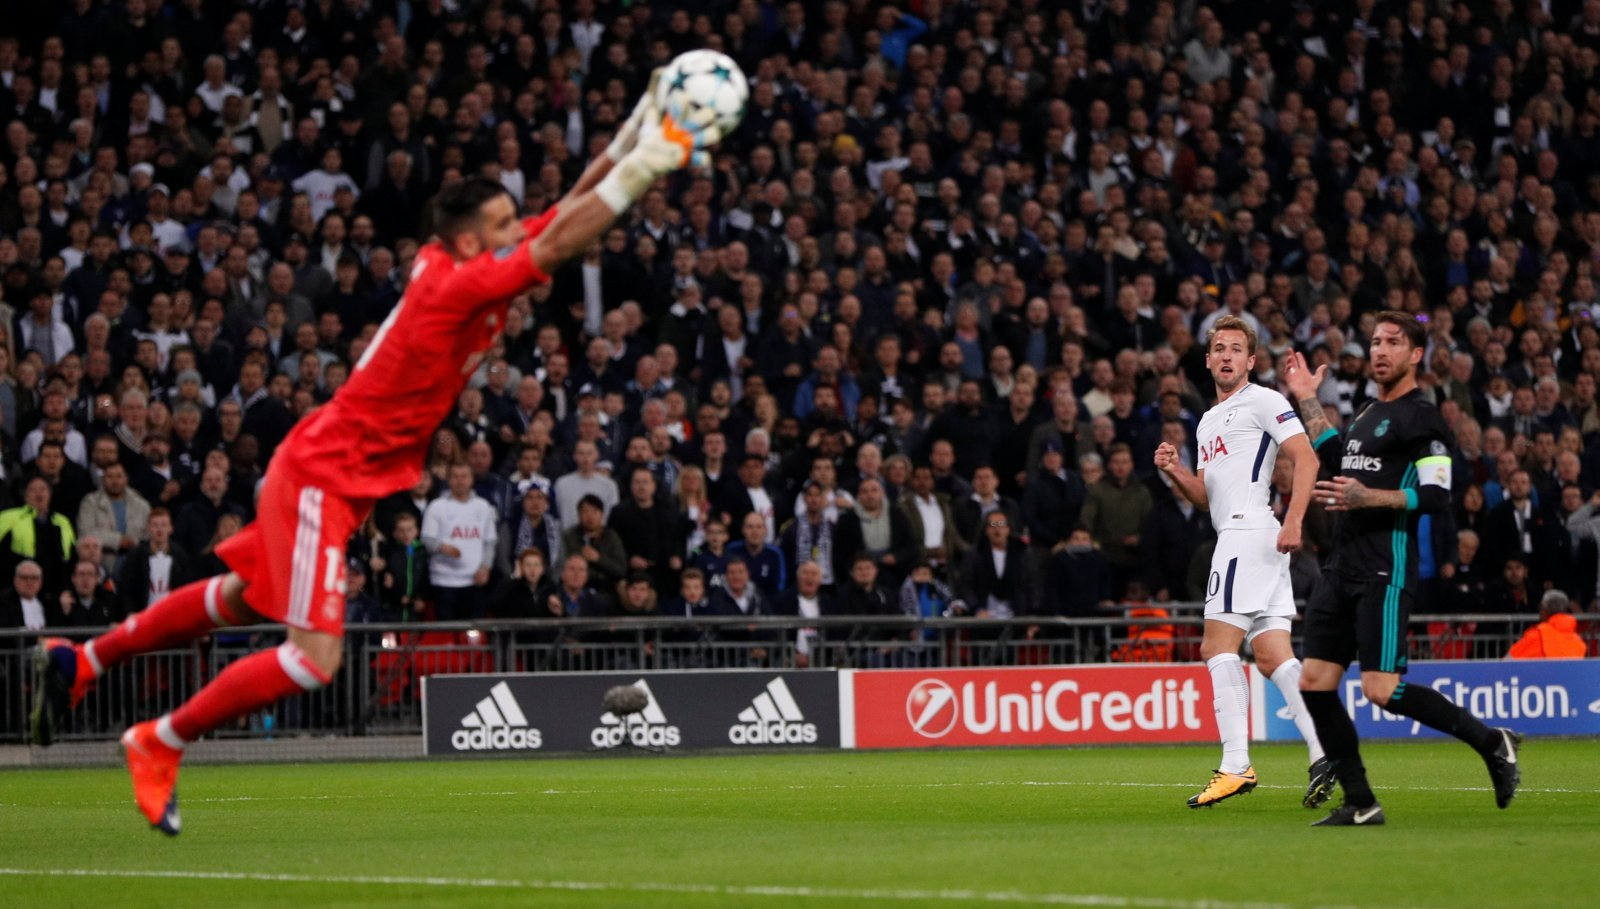 Kiko Casilla is exactly what Leeds United need to aid promotion battle